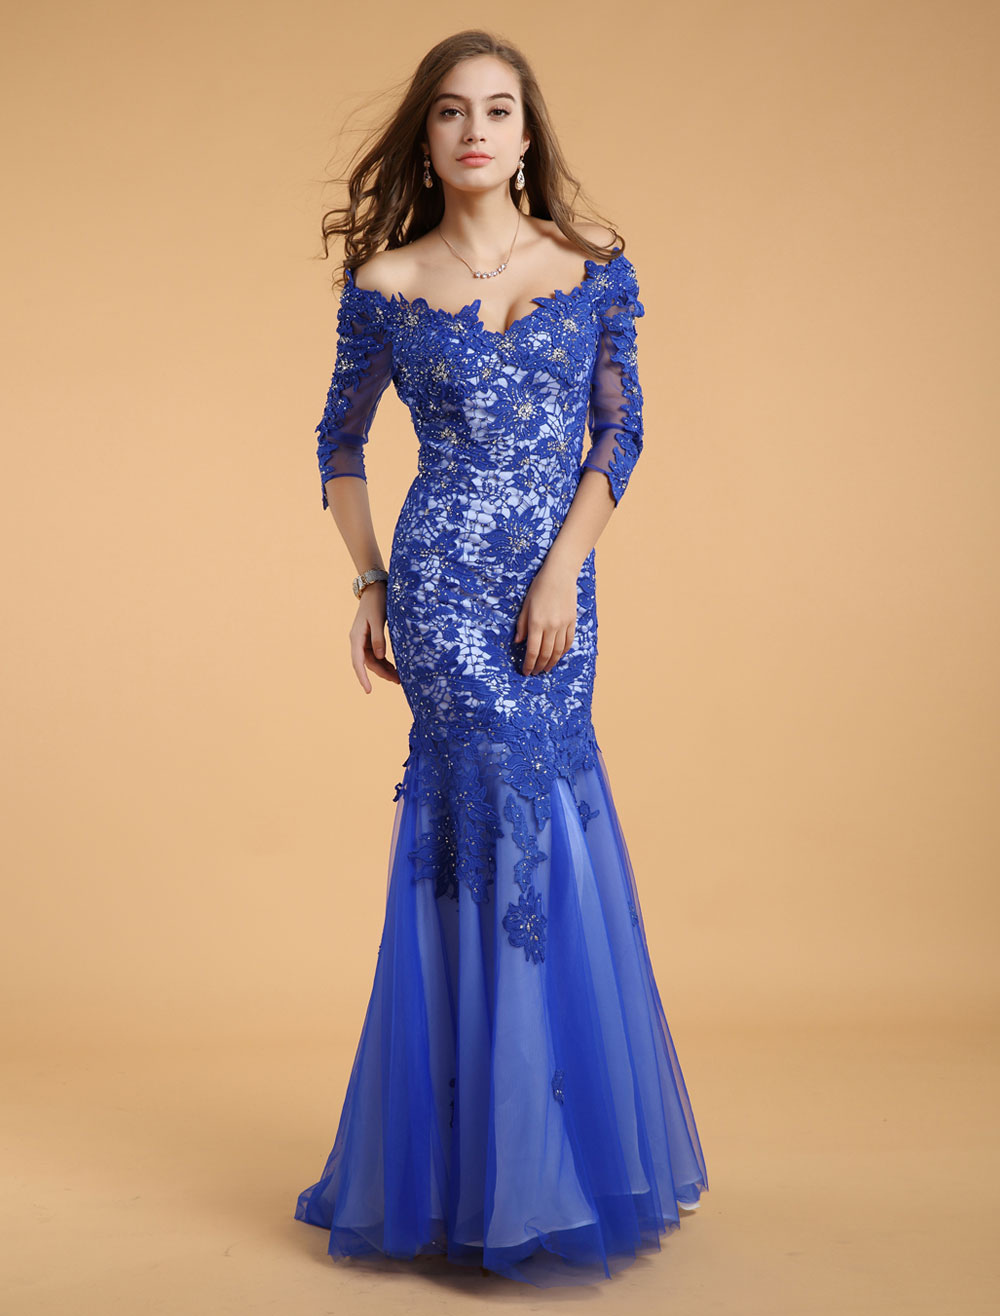 royal blue bateau neck beading mermaid lace evening dress with 3 4 length sleeves. Black Bedroom Furniture Sets. Home Design Ideas